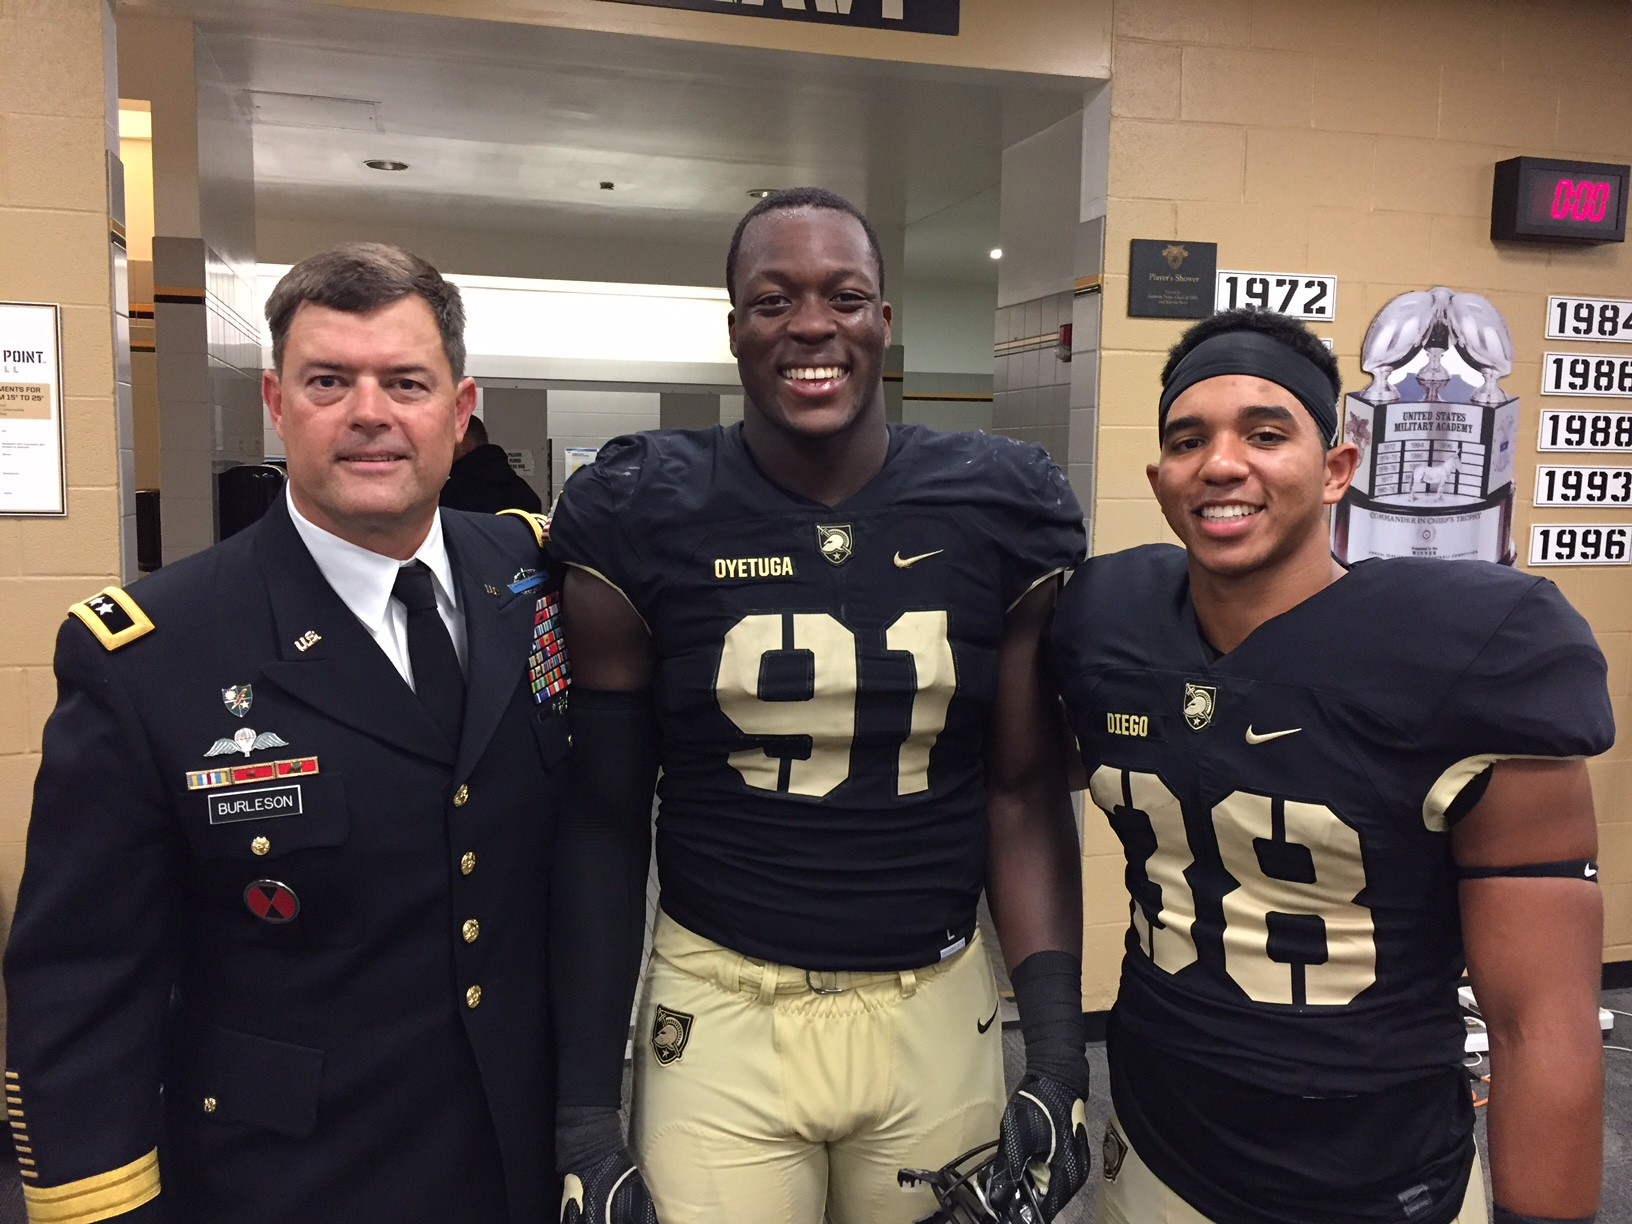 MG Bill Burleson, '88, Cadet Wunmi Oyetuga (#91) And Cadet Donnell Diego (#38)